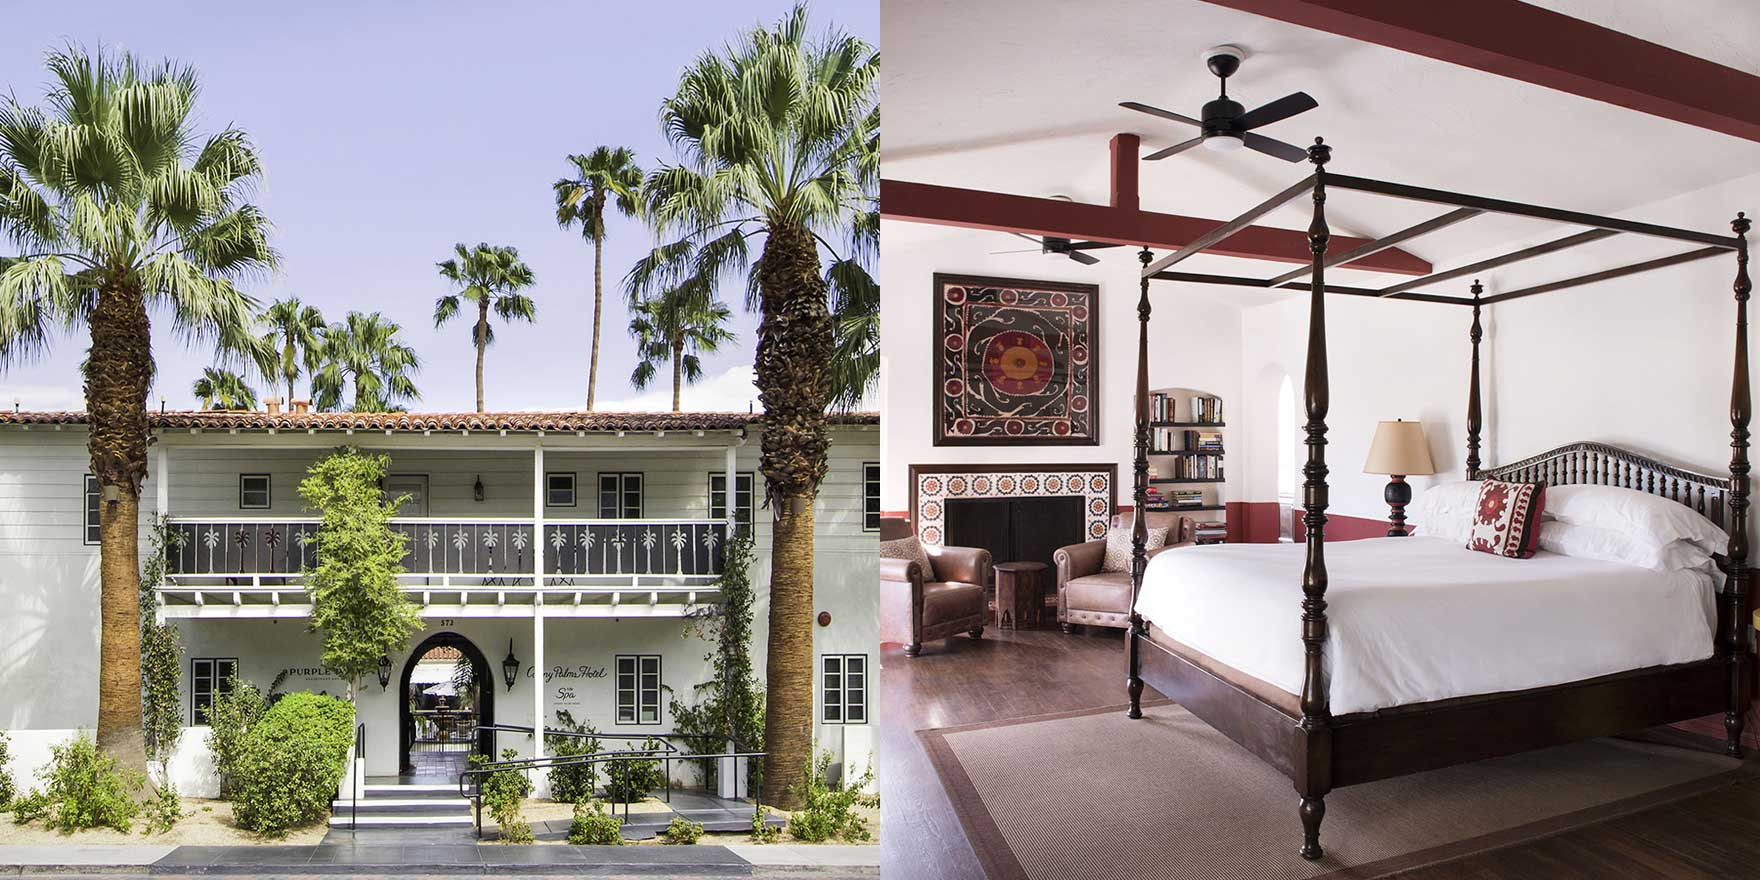 Colony Palms Hotel – Boutique Hotel in Palm Springs